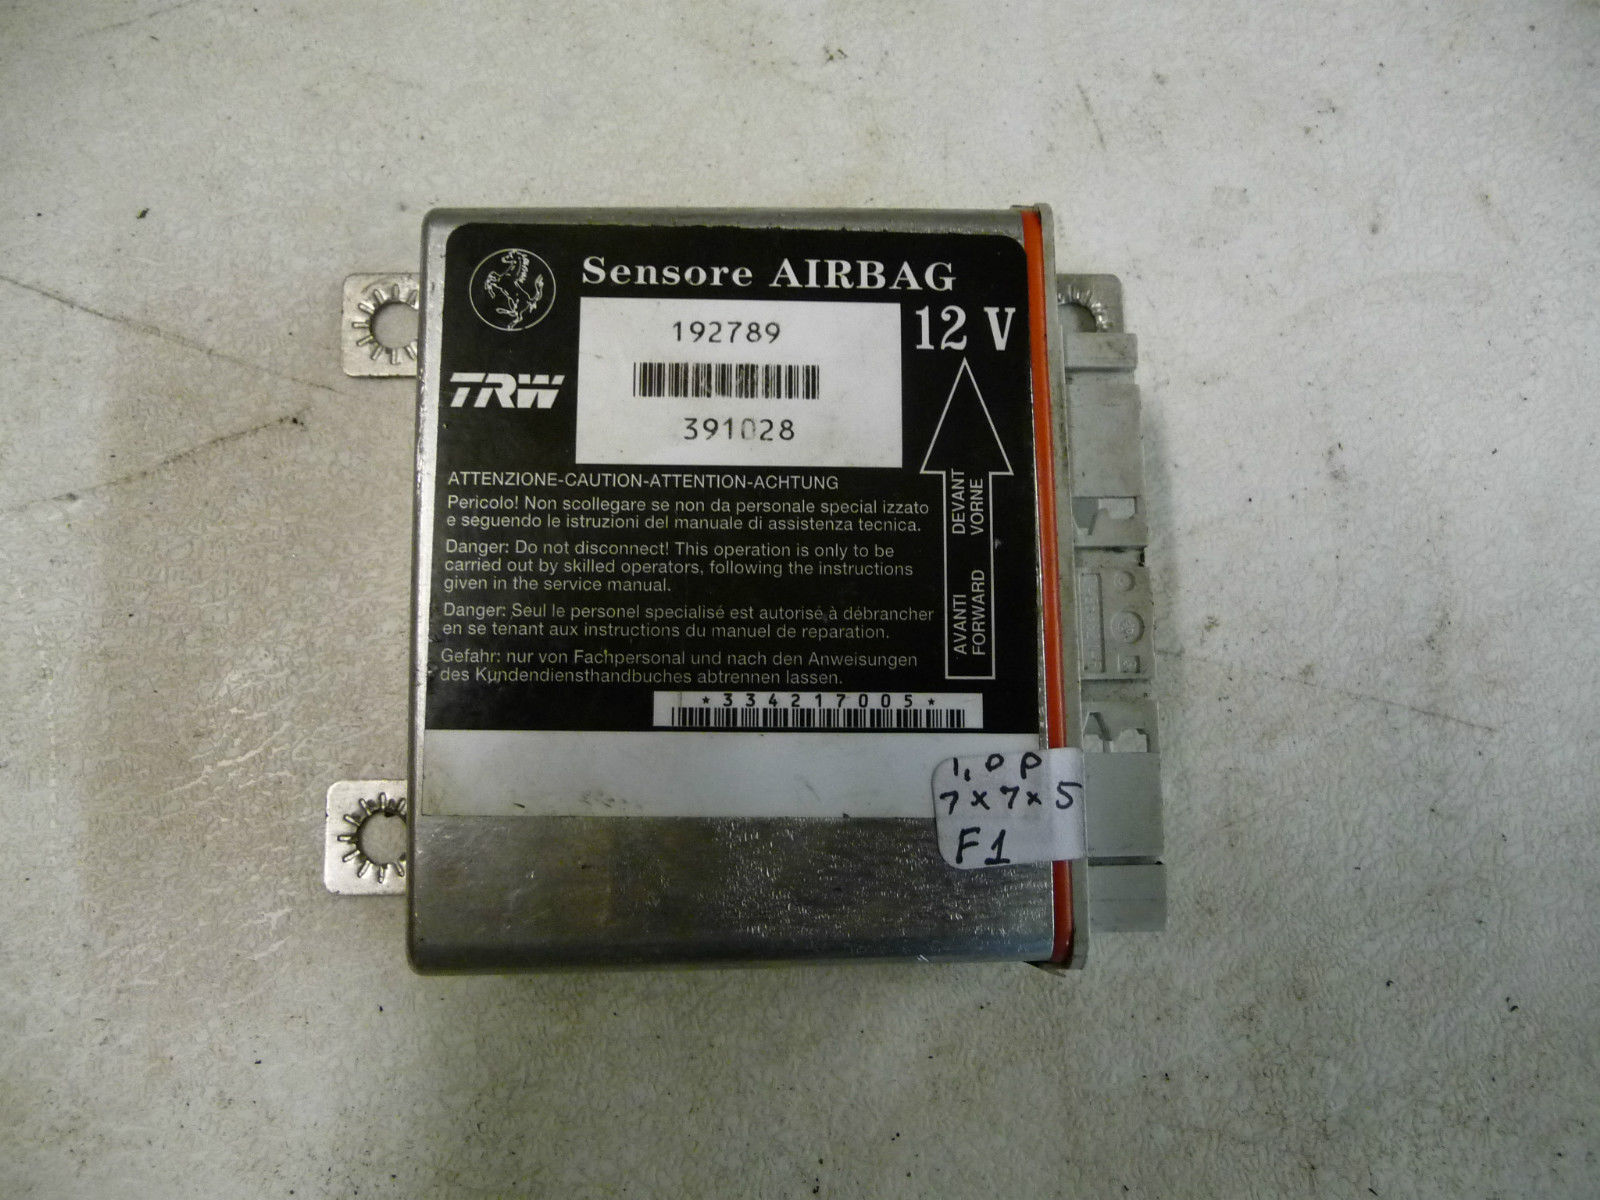 Ferrari F430 430 Air Bag Control Unit 192789 - Used Auto Parts Store | LA Global Parts